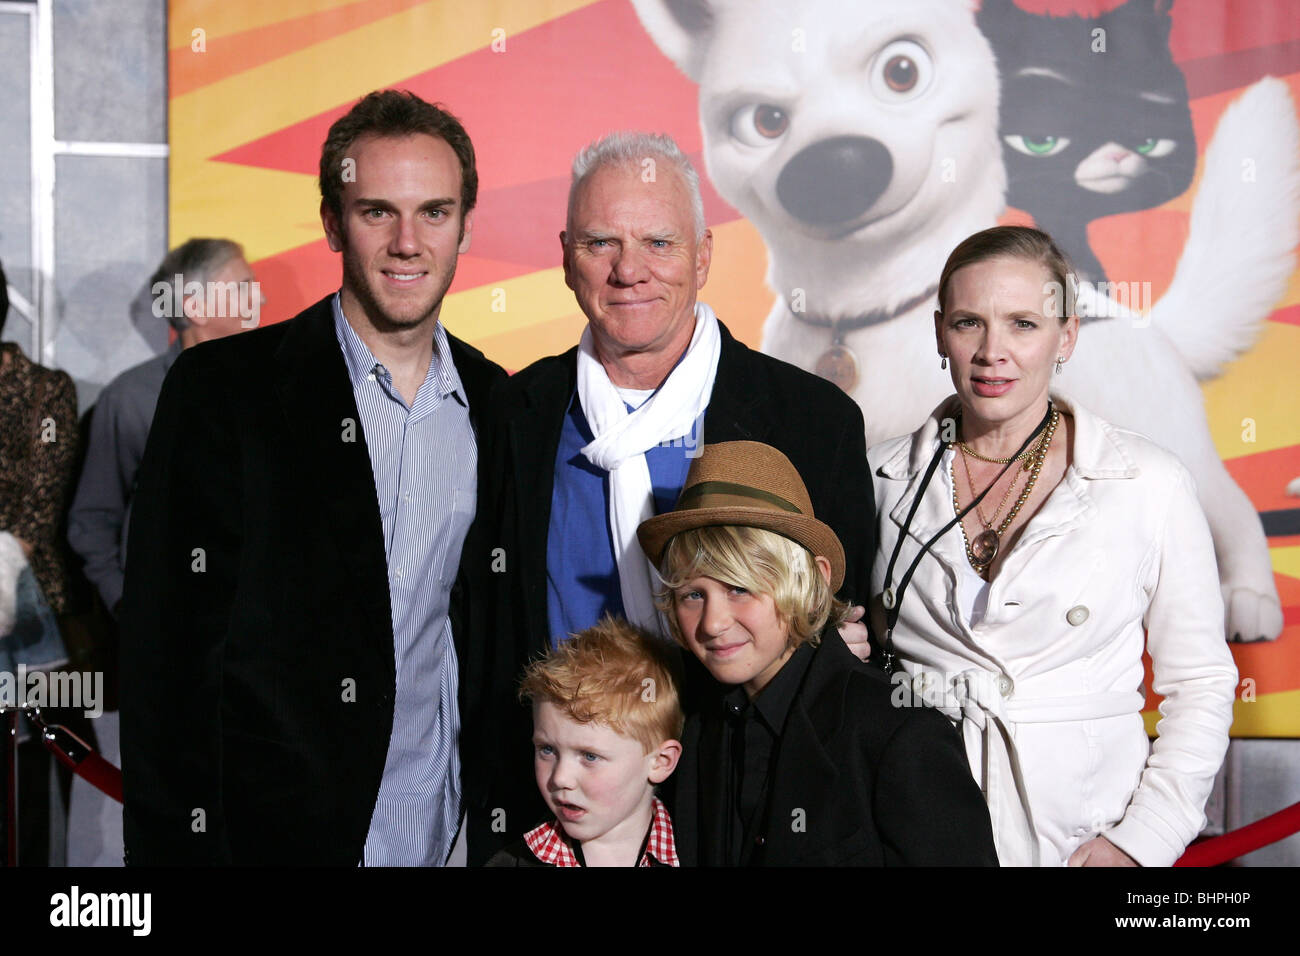 Malcolm mcdowell family bolt world premiere hollywood los angeles ca usa 17 november 2008 stock